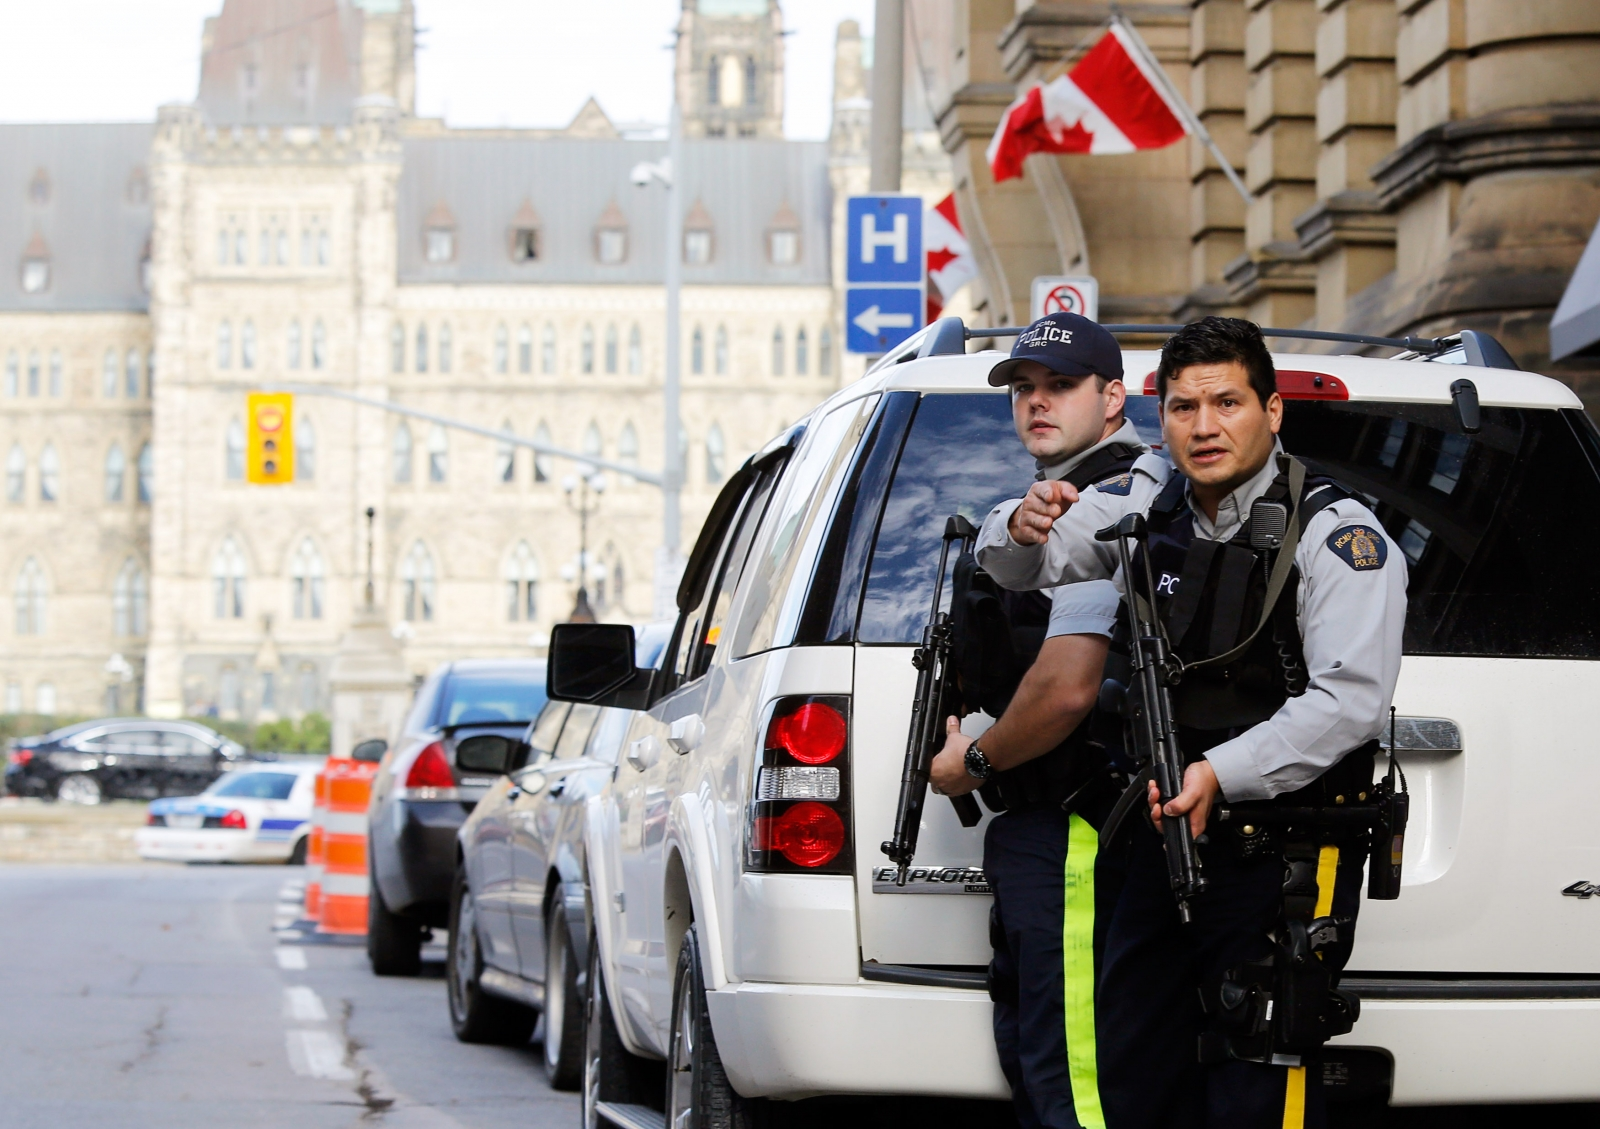 RMP officers guard Canada's parliament building in Ottawa. (Reuters)